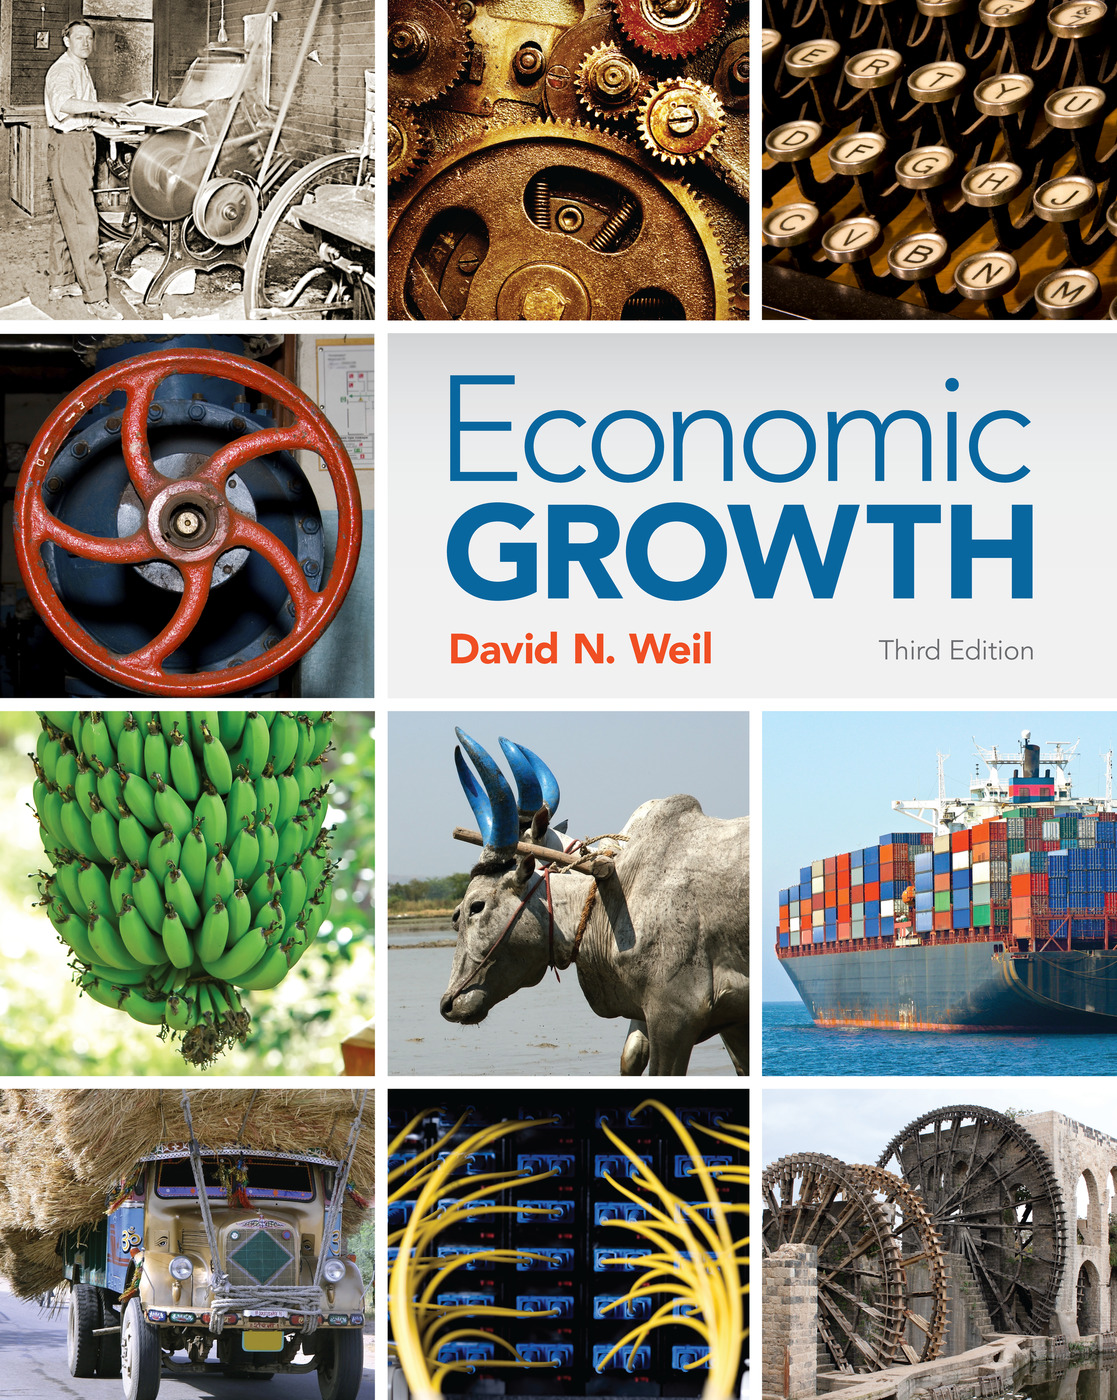 Economic Growth book cover